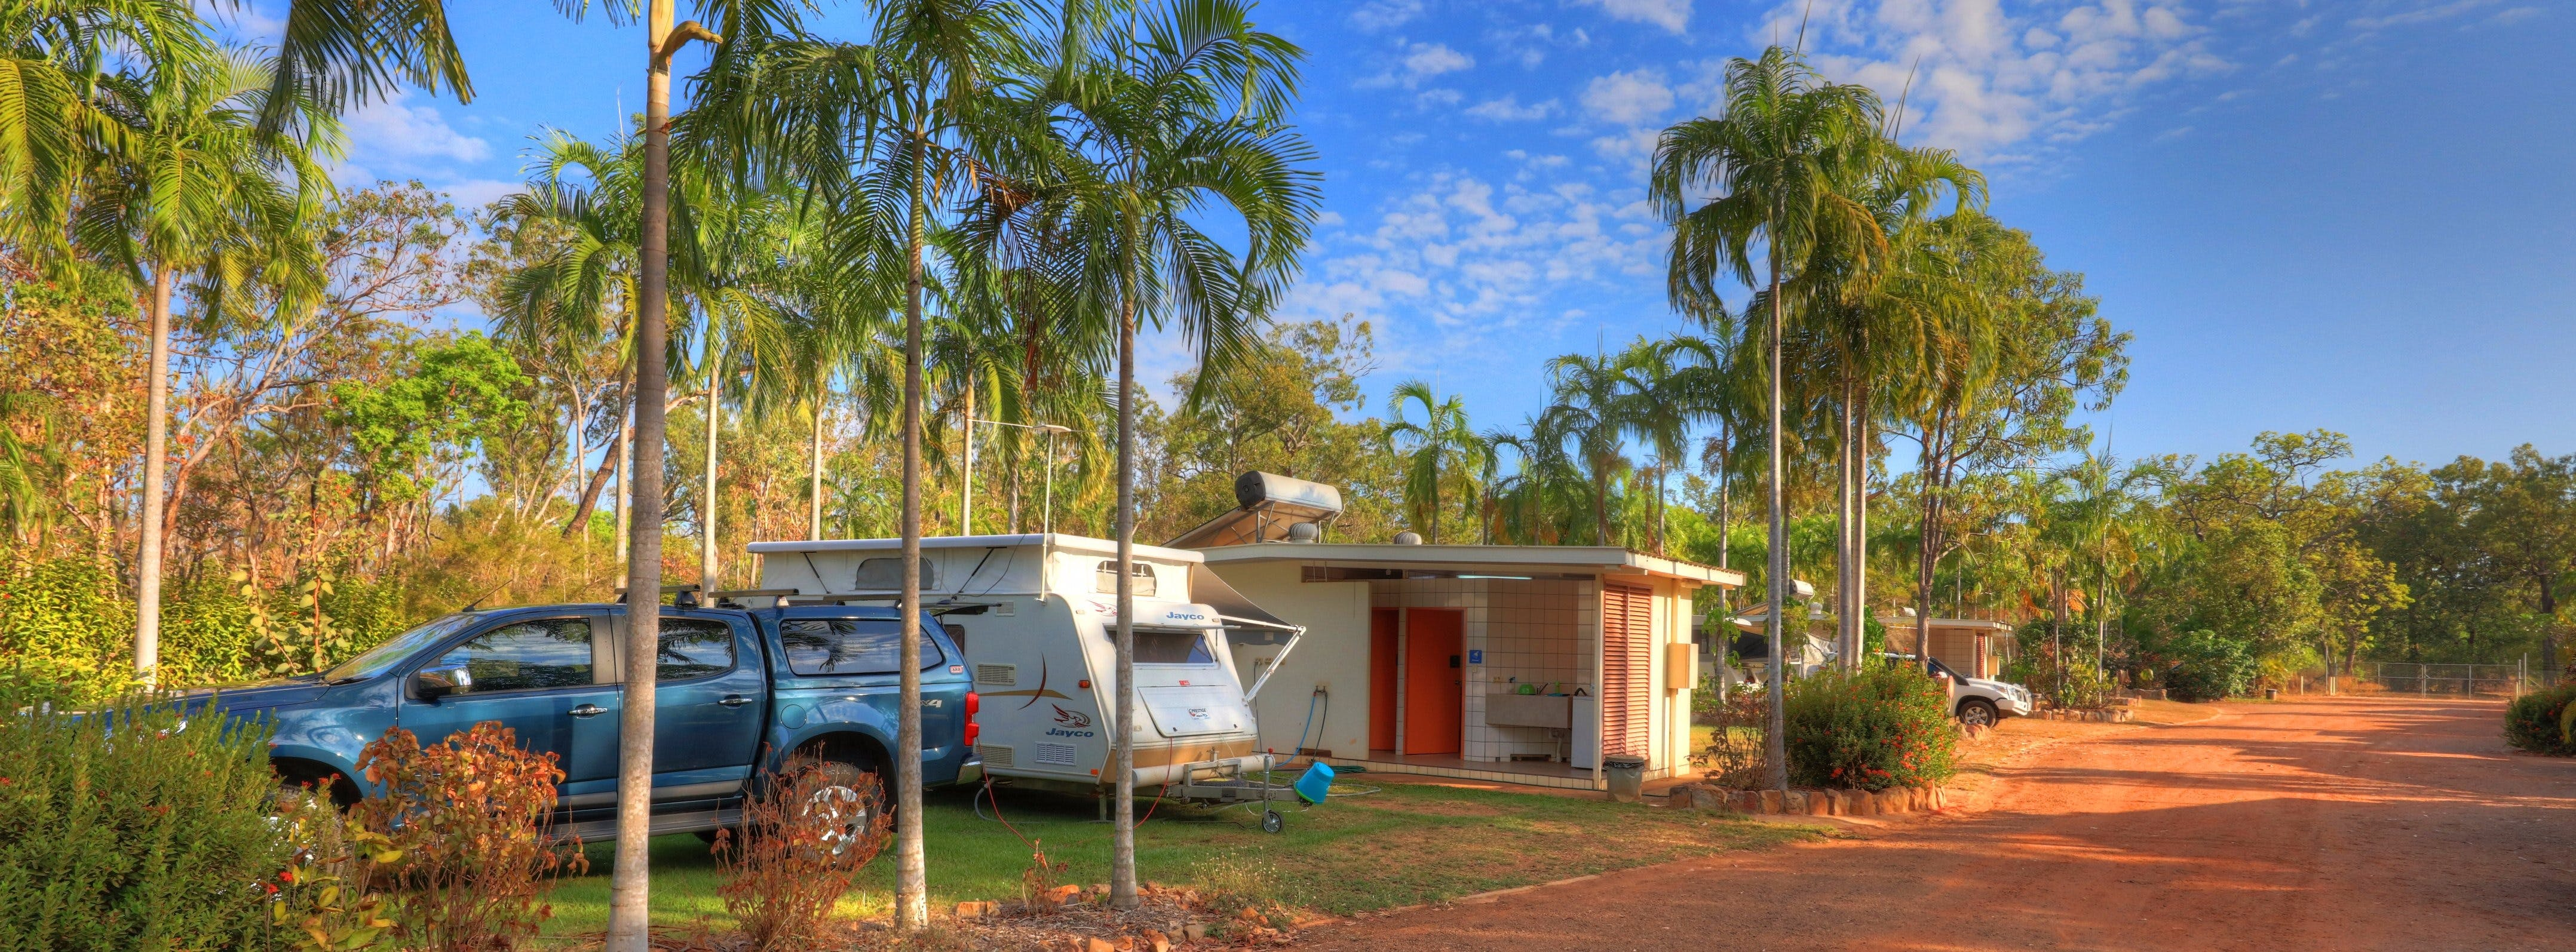 Batchelor Holiday Park - Accommodation Rockhampton